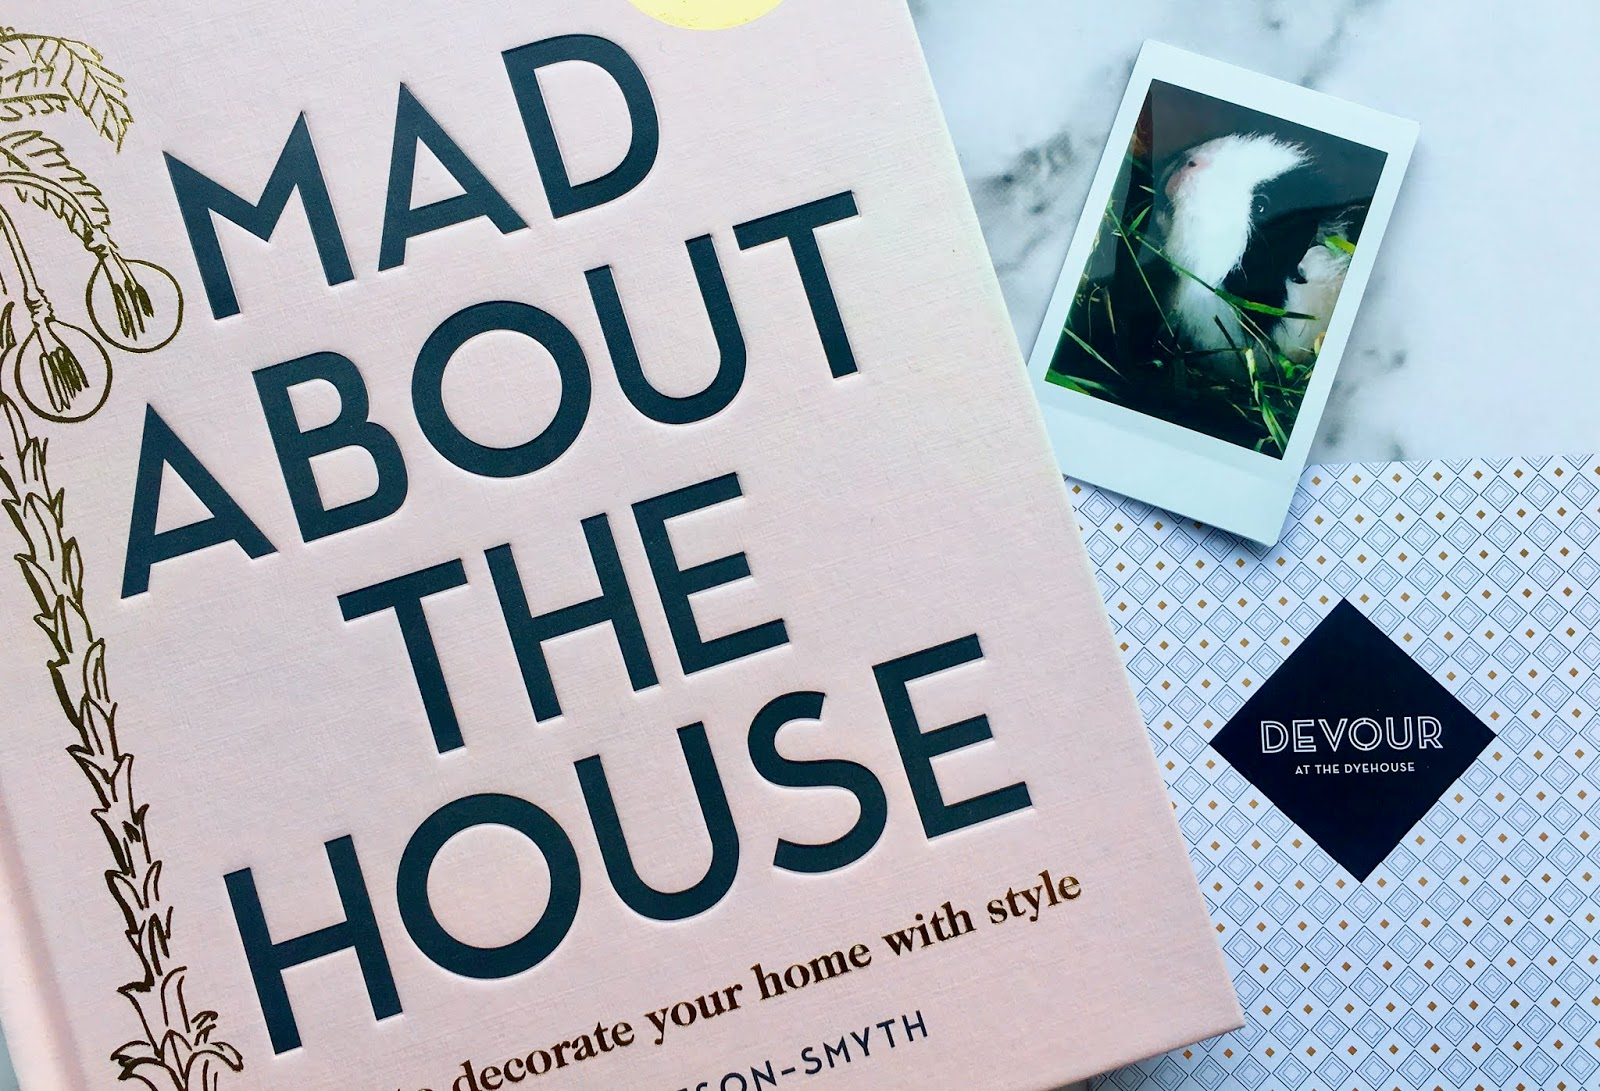 Mad About The House book, Cookie the Guinea Pig, and Devour restaurant